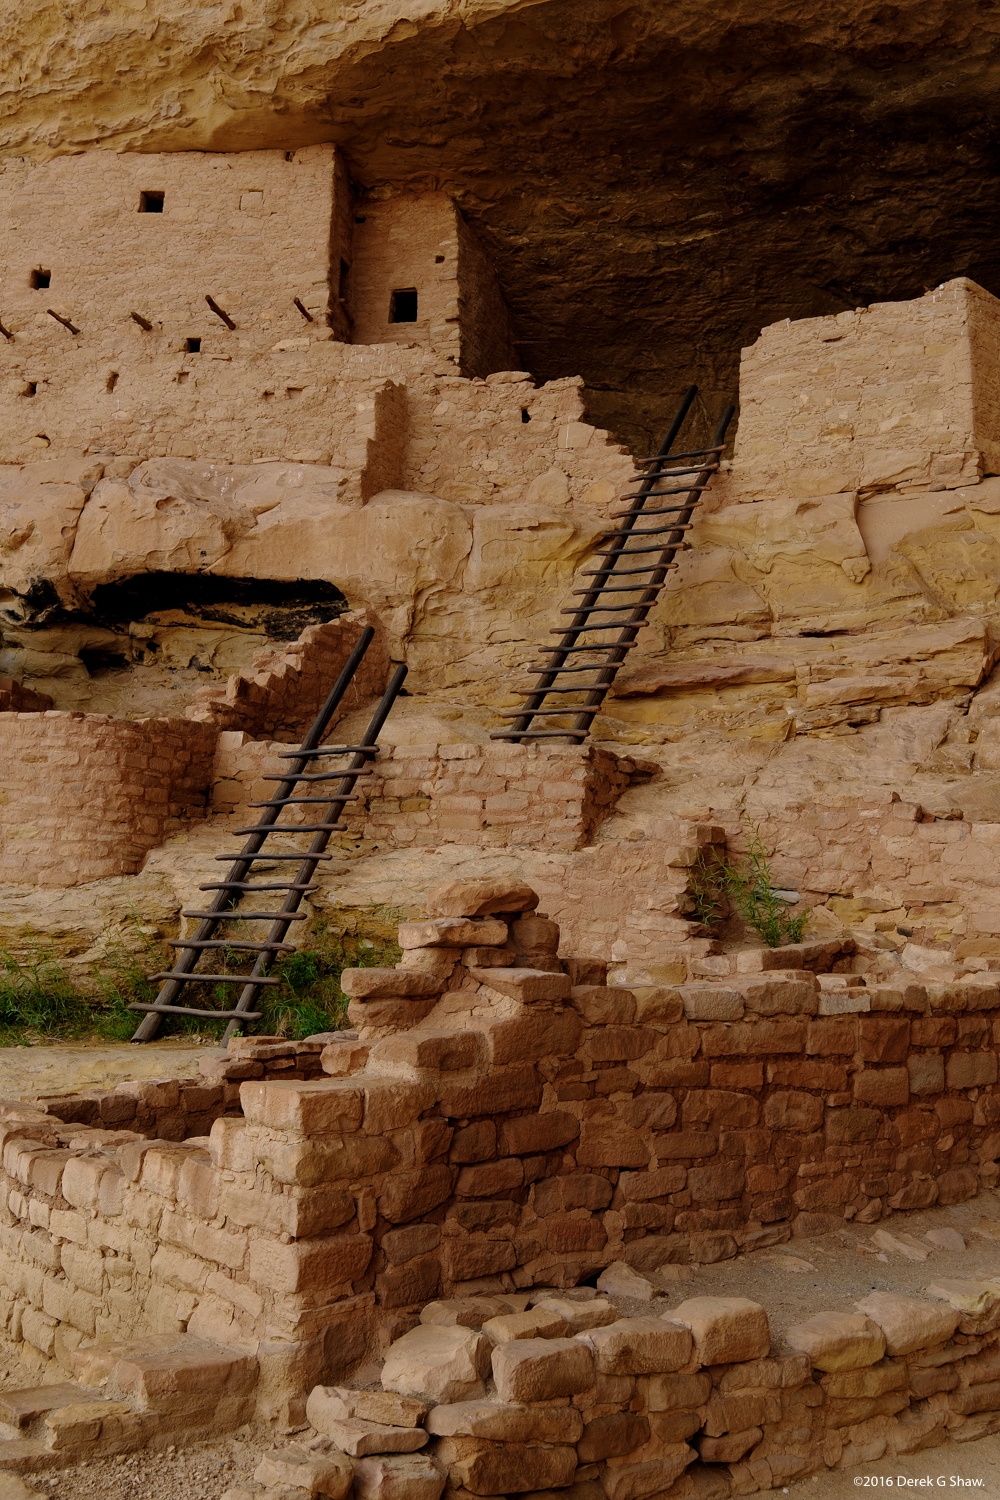 Replica of Ancient Ladders #1